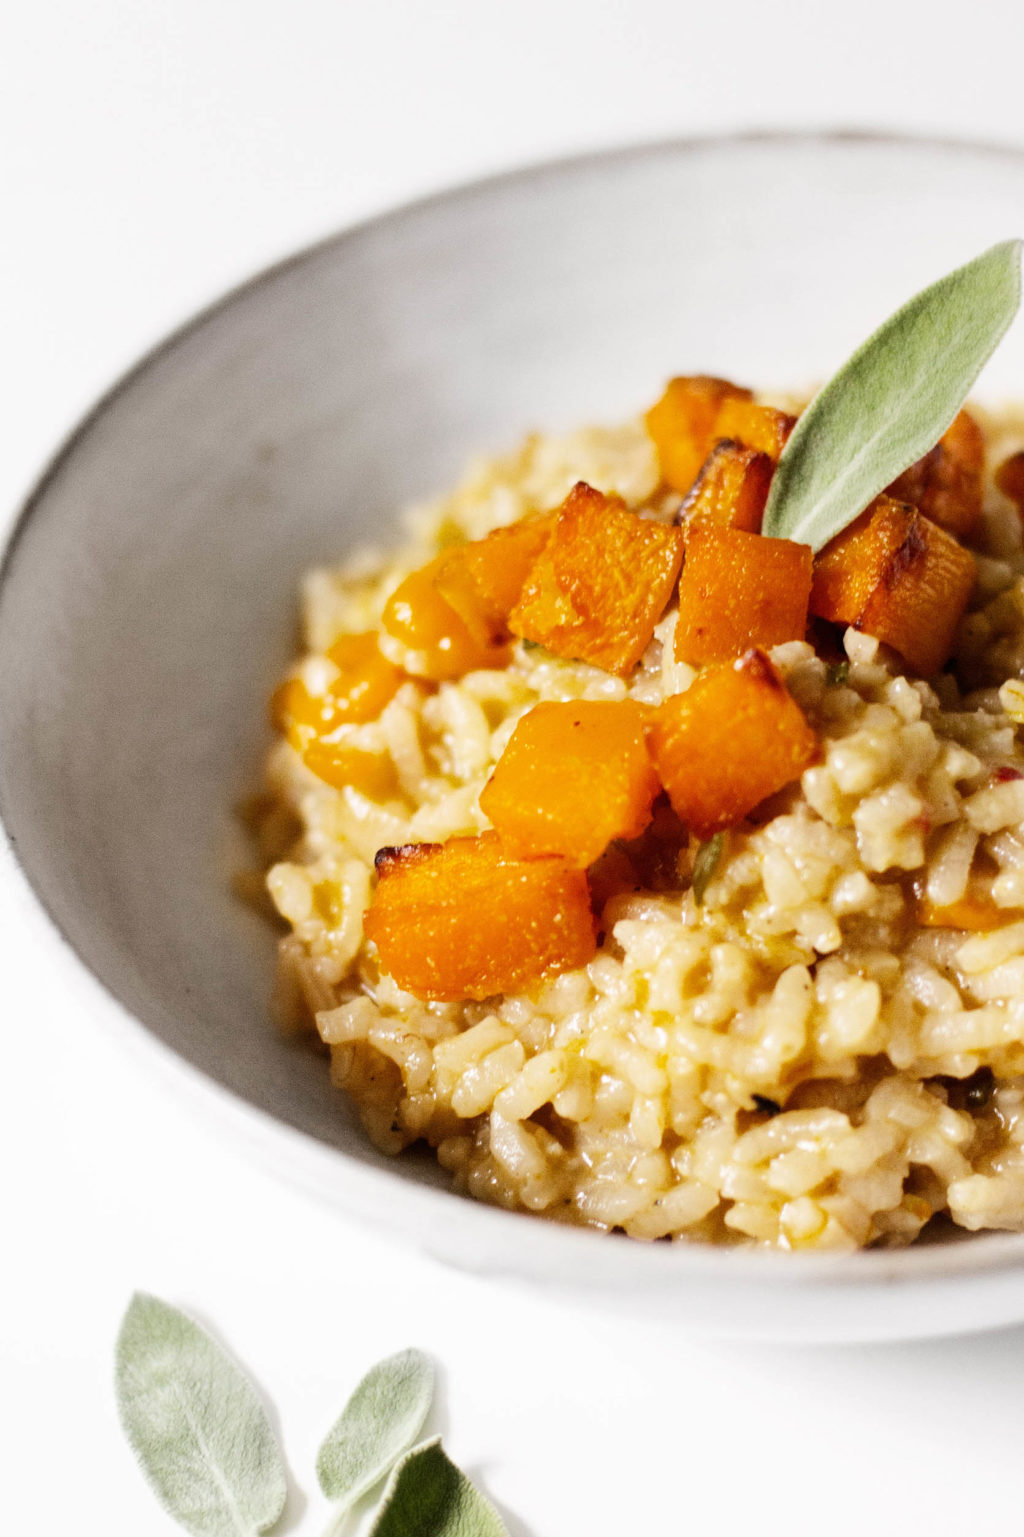 A close up photograph of a creamy vegan risotto, made with tender roasted butternut squash.